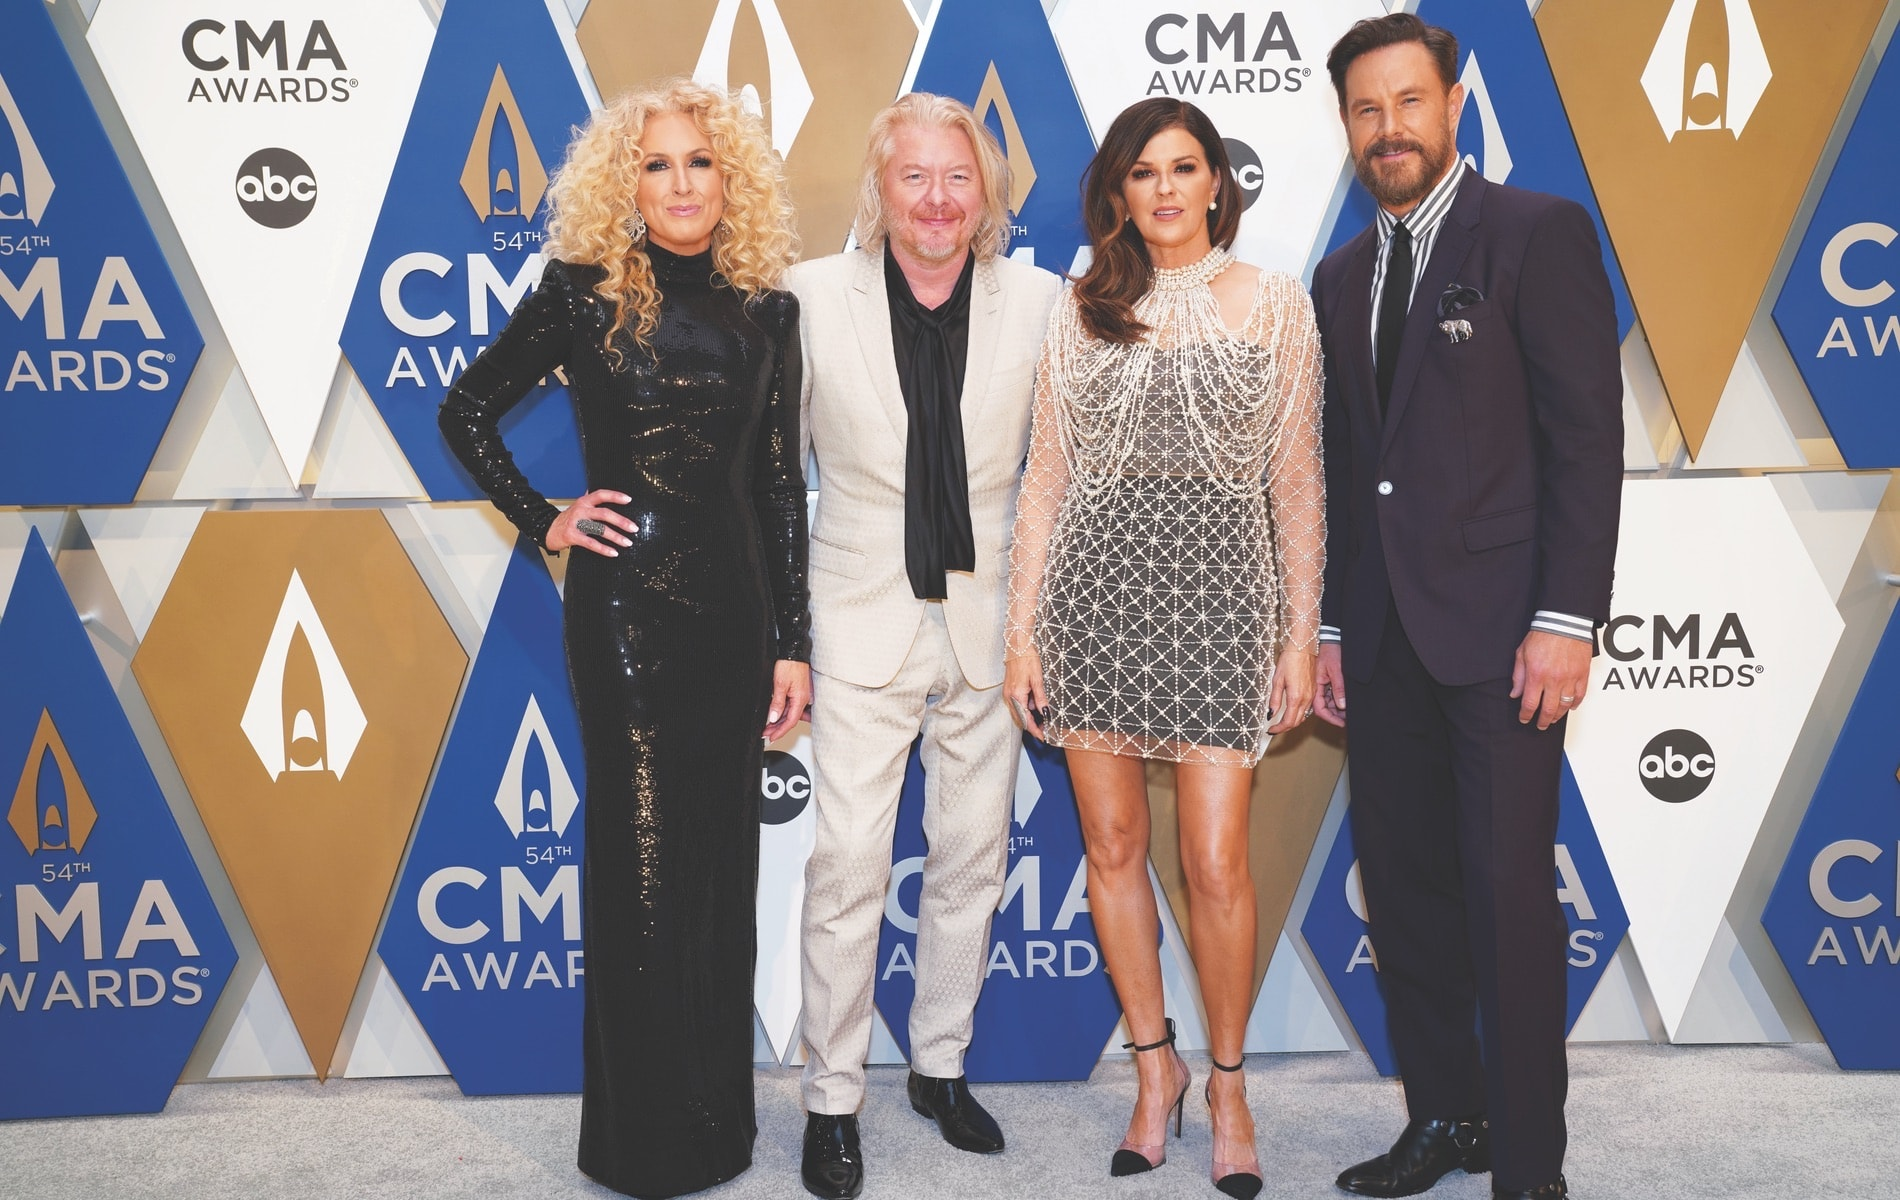 Little Big Town, Country Music Association, Music City Center, 54th Annual Country Music Association Awards, CMA Awards